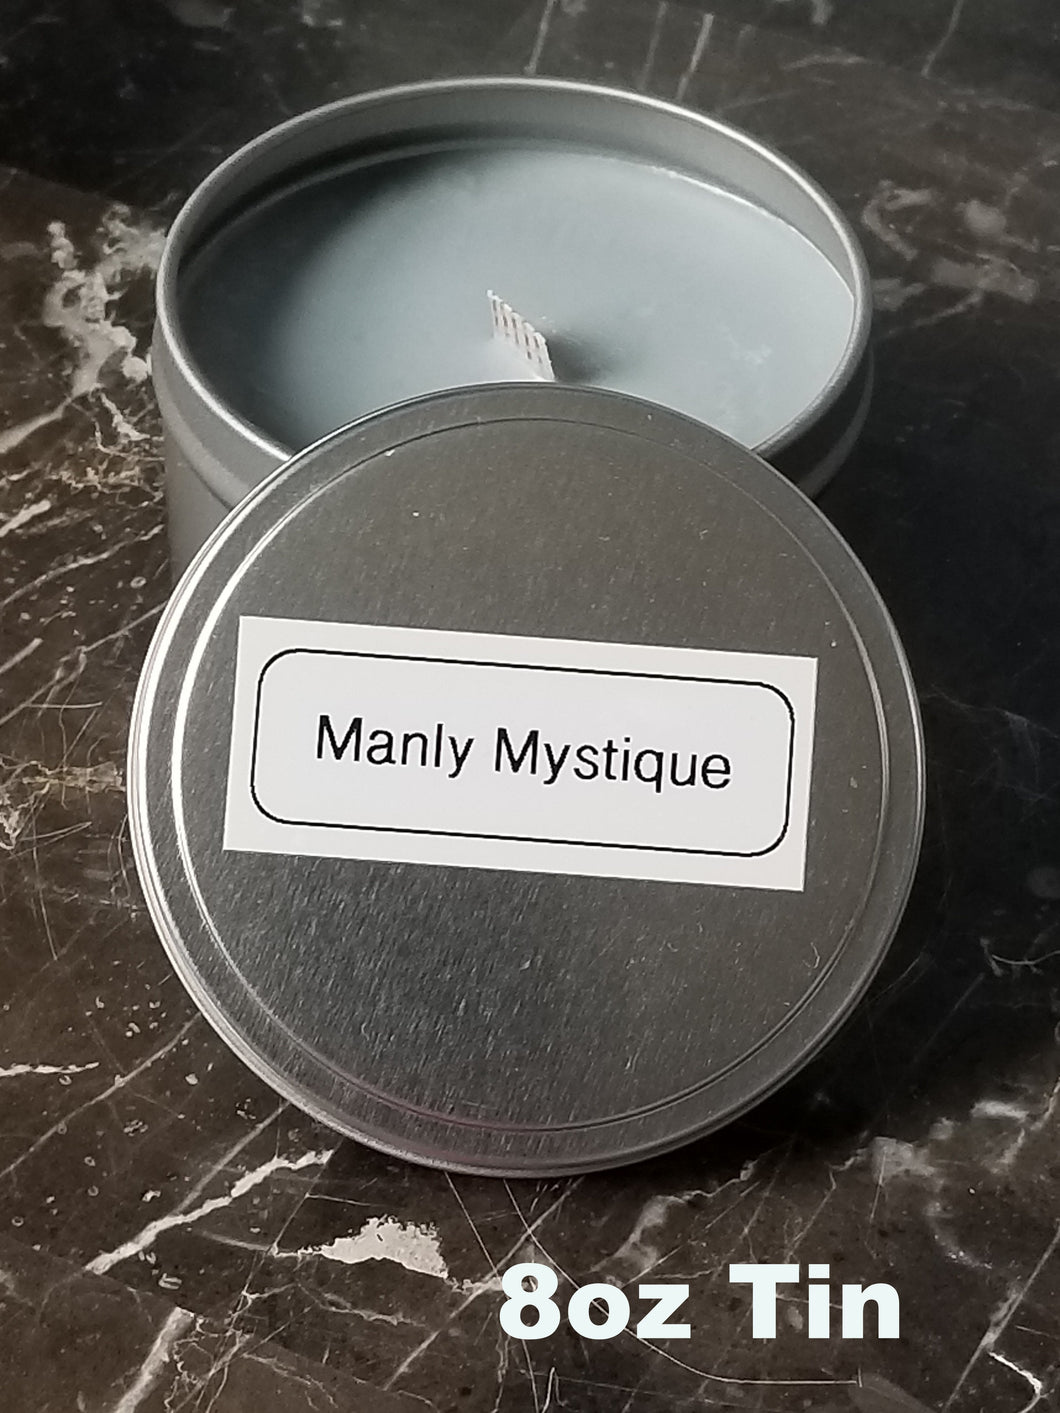 Manly Mystique Candles